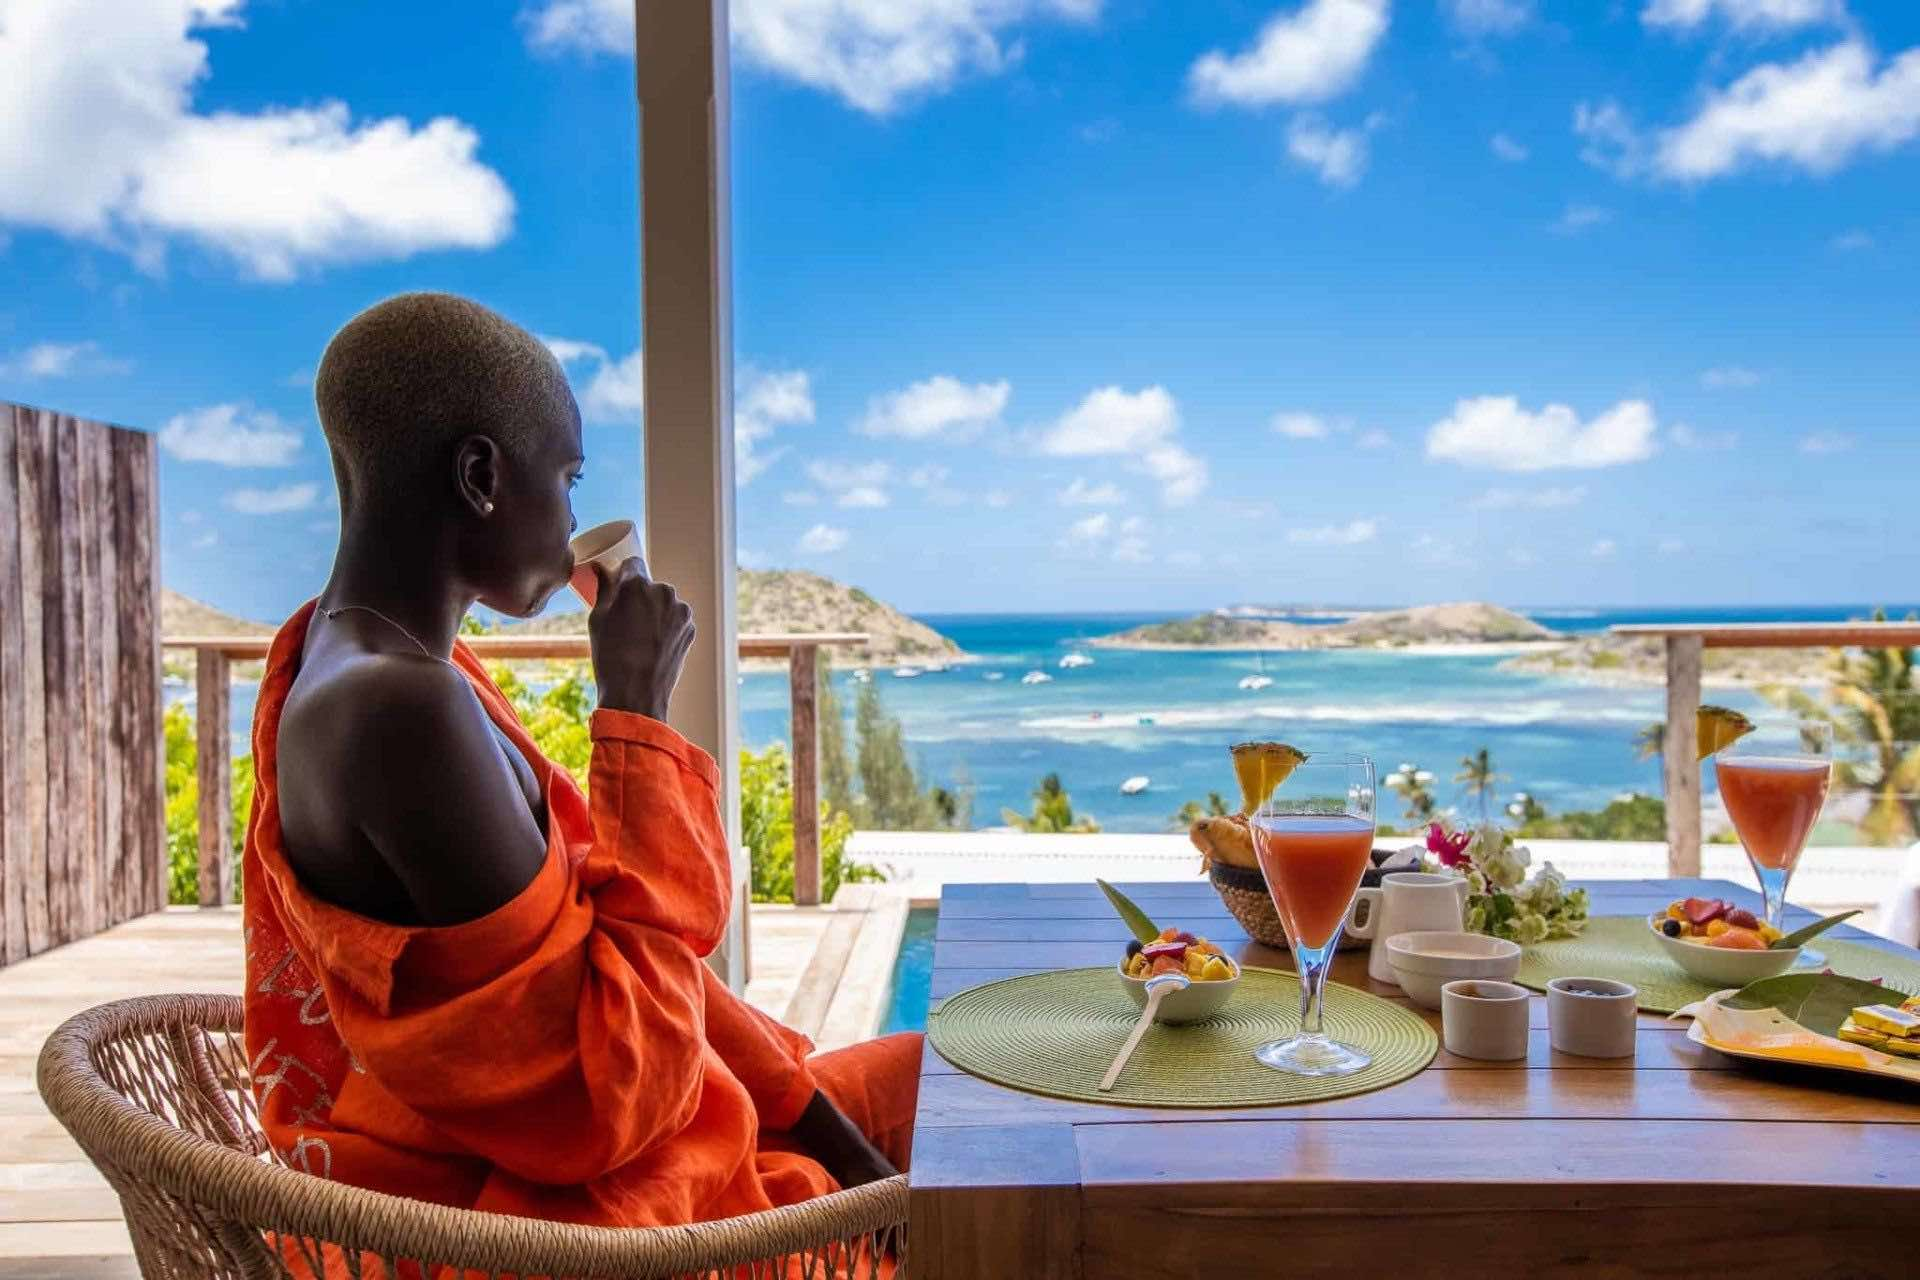 Woman sipping cofffee on balcony overlooking ocean at le-karibuni-boutique-hotels in St MarAtin